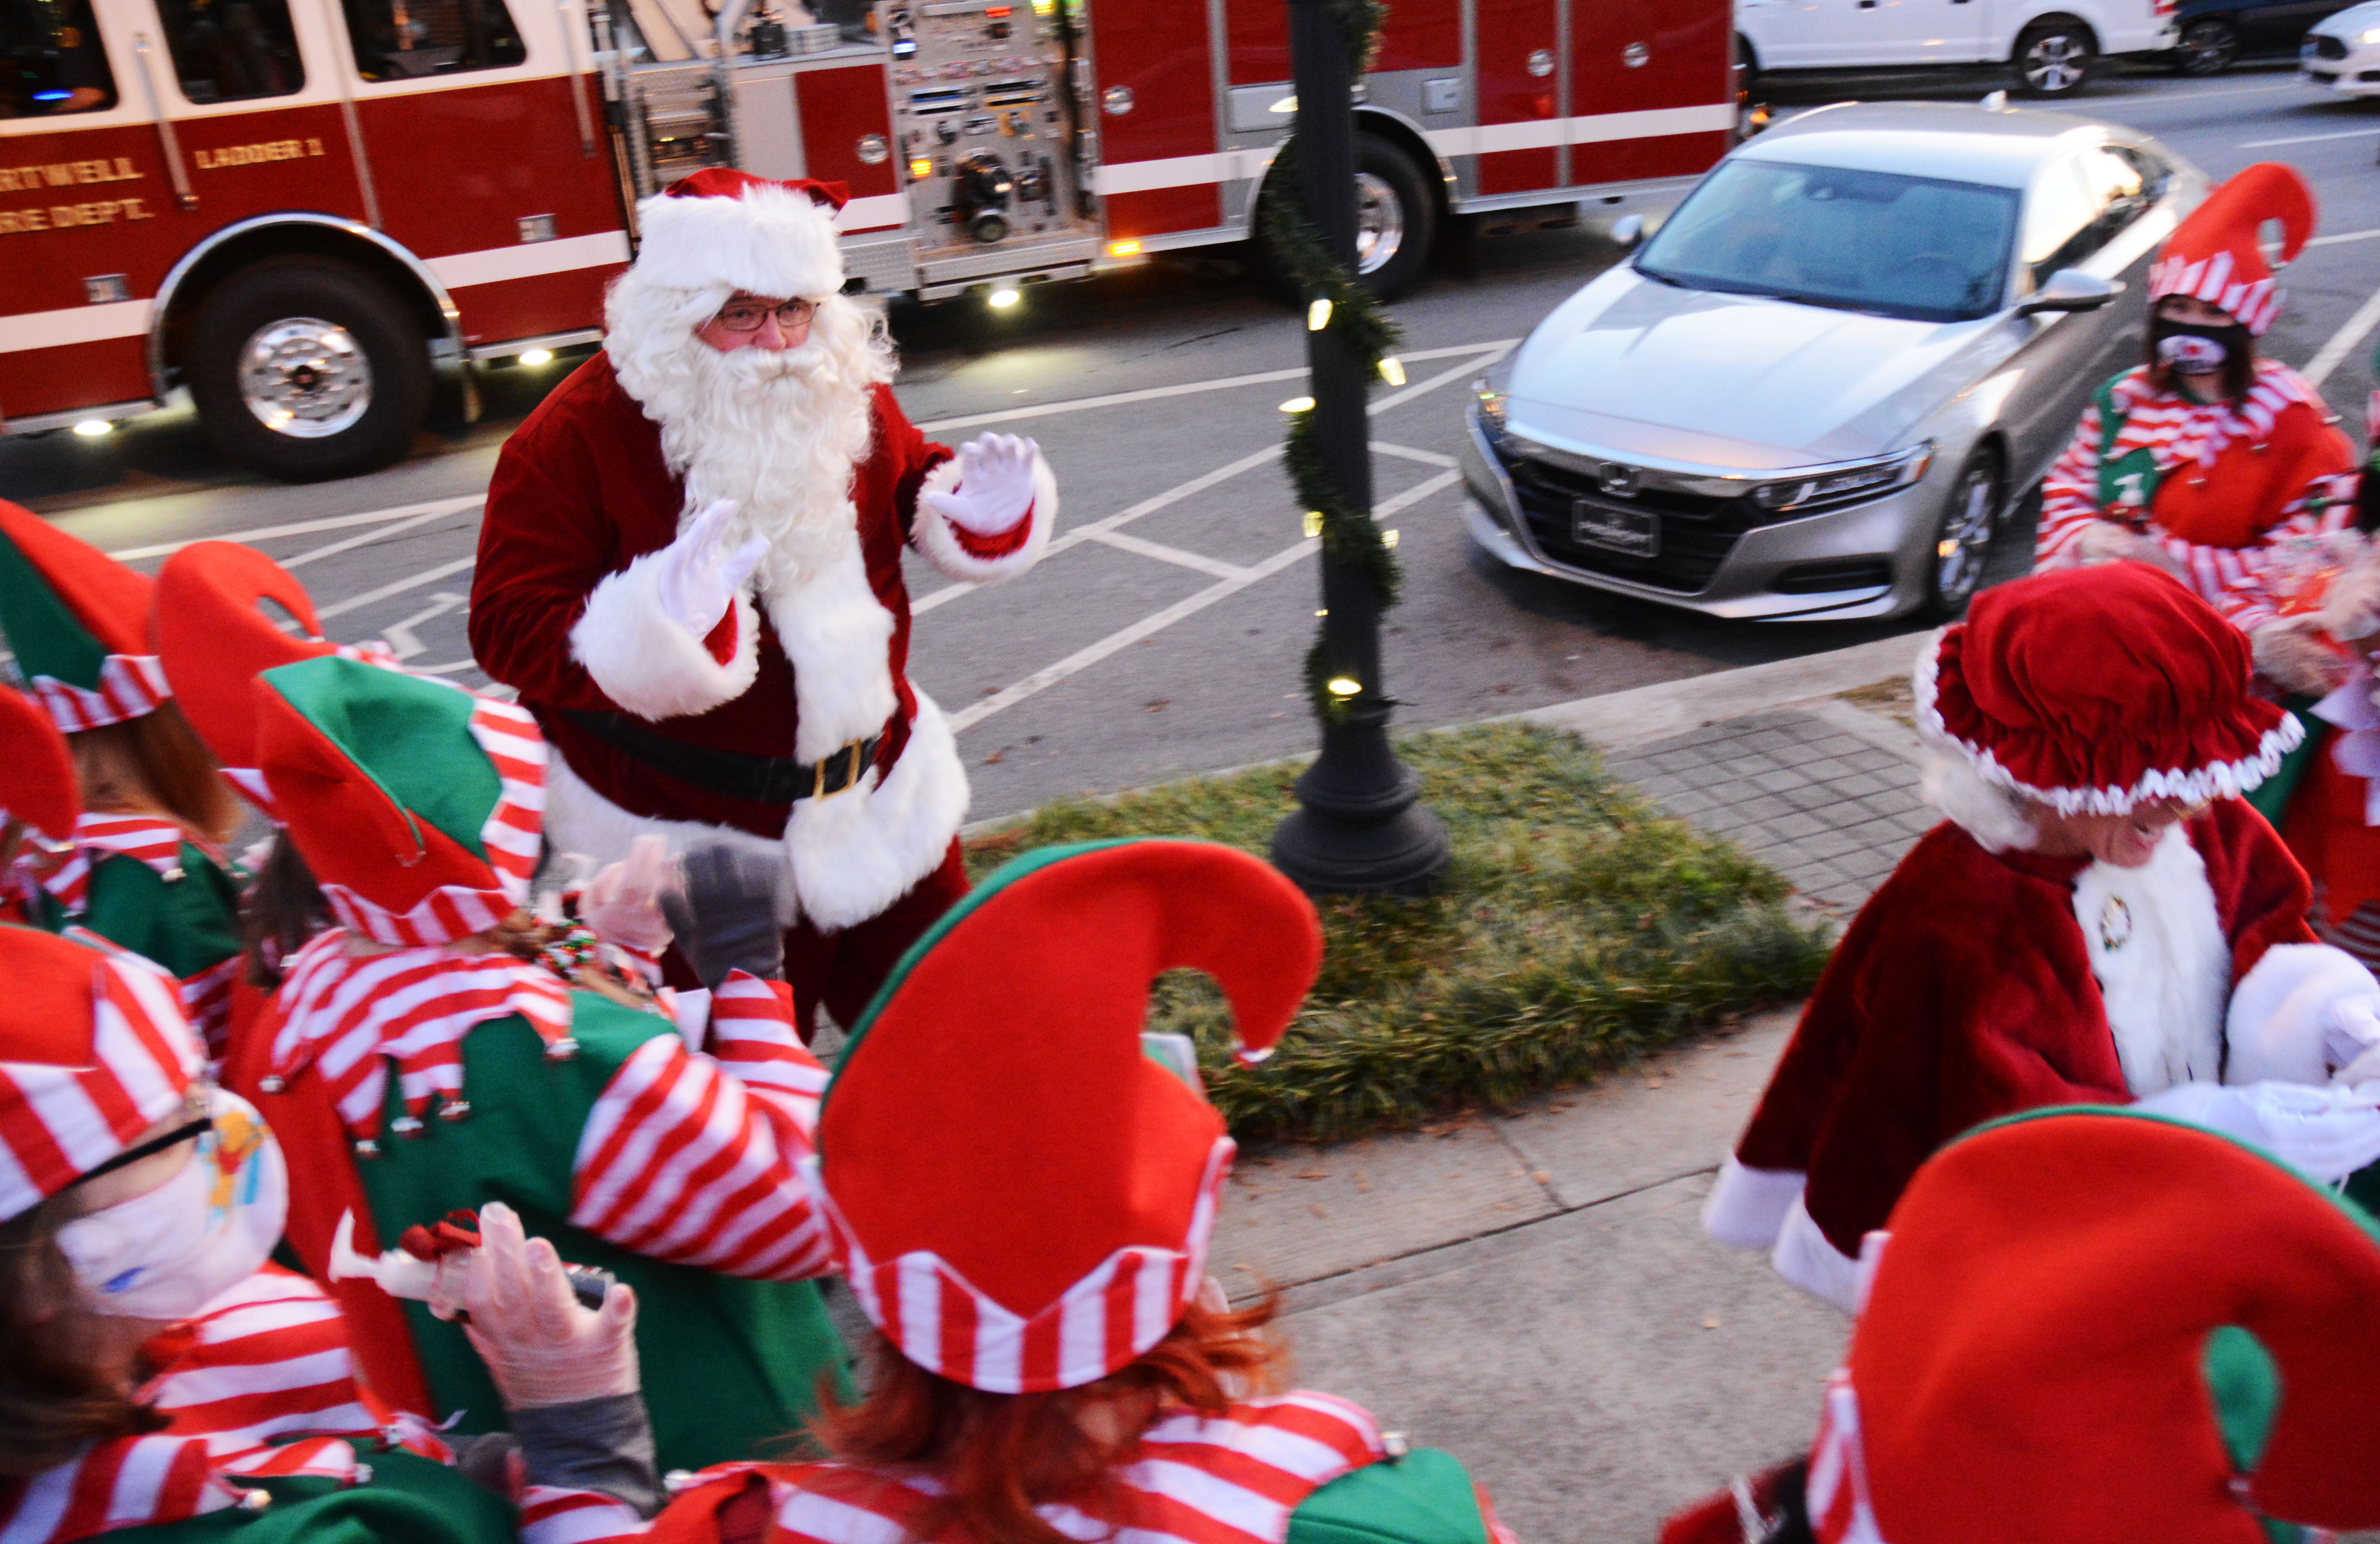 Santa waves to his elves as they greet him and Mrs. Claus, who hitched a ride to the event with the Hartwell Fire Department.